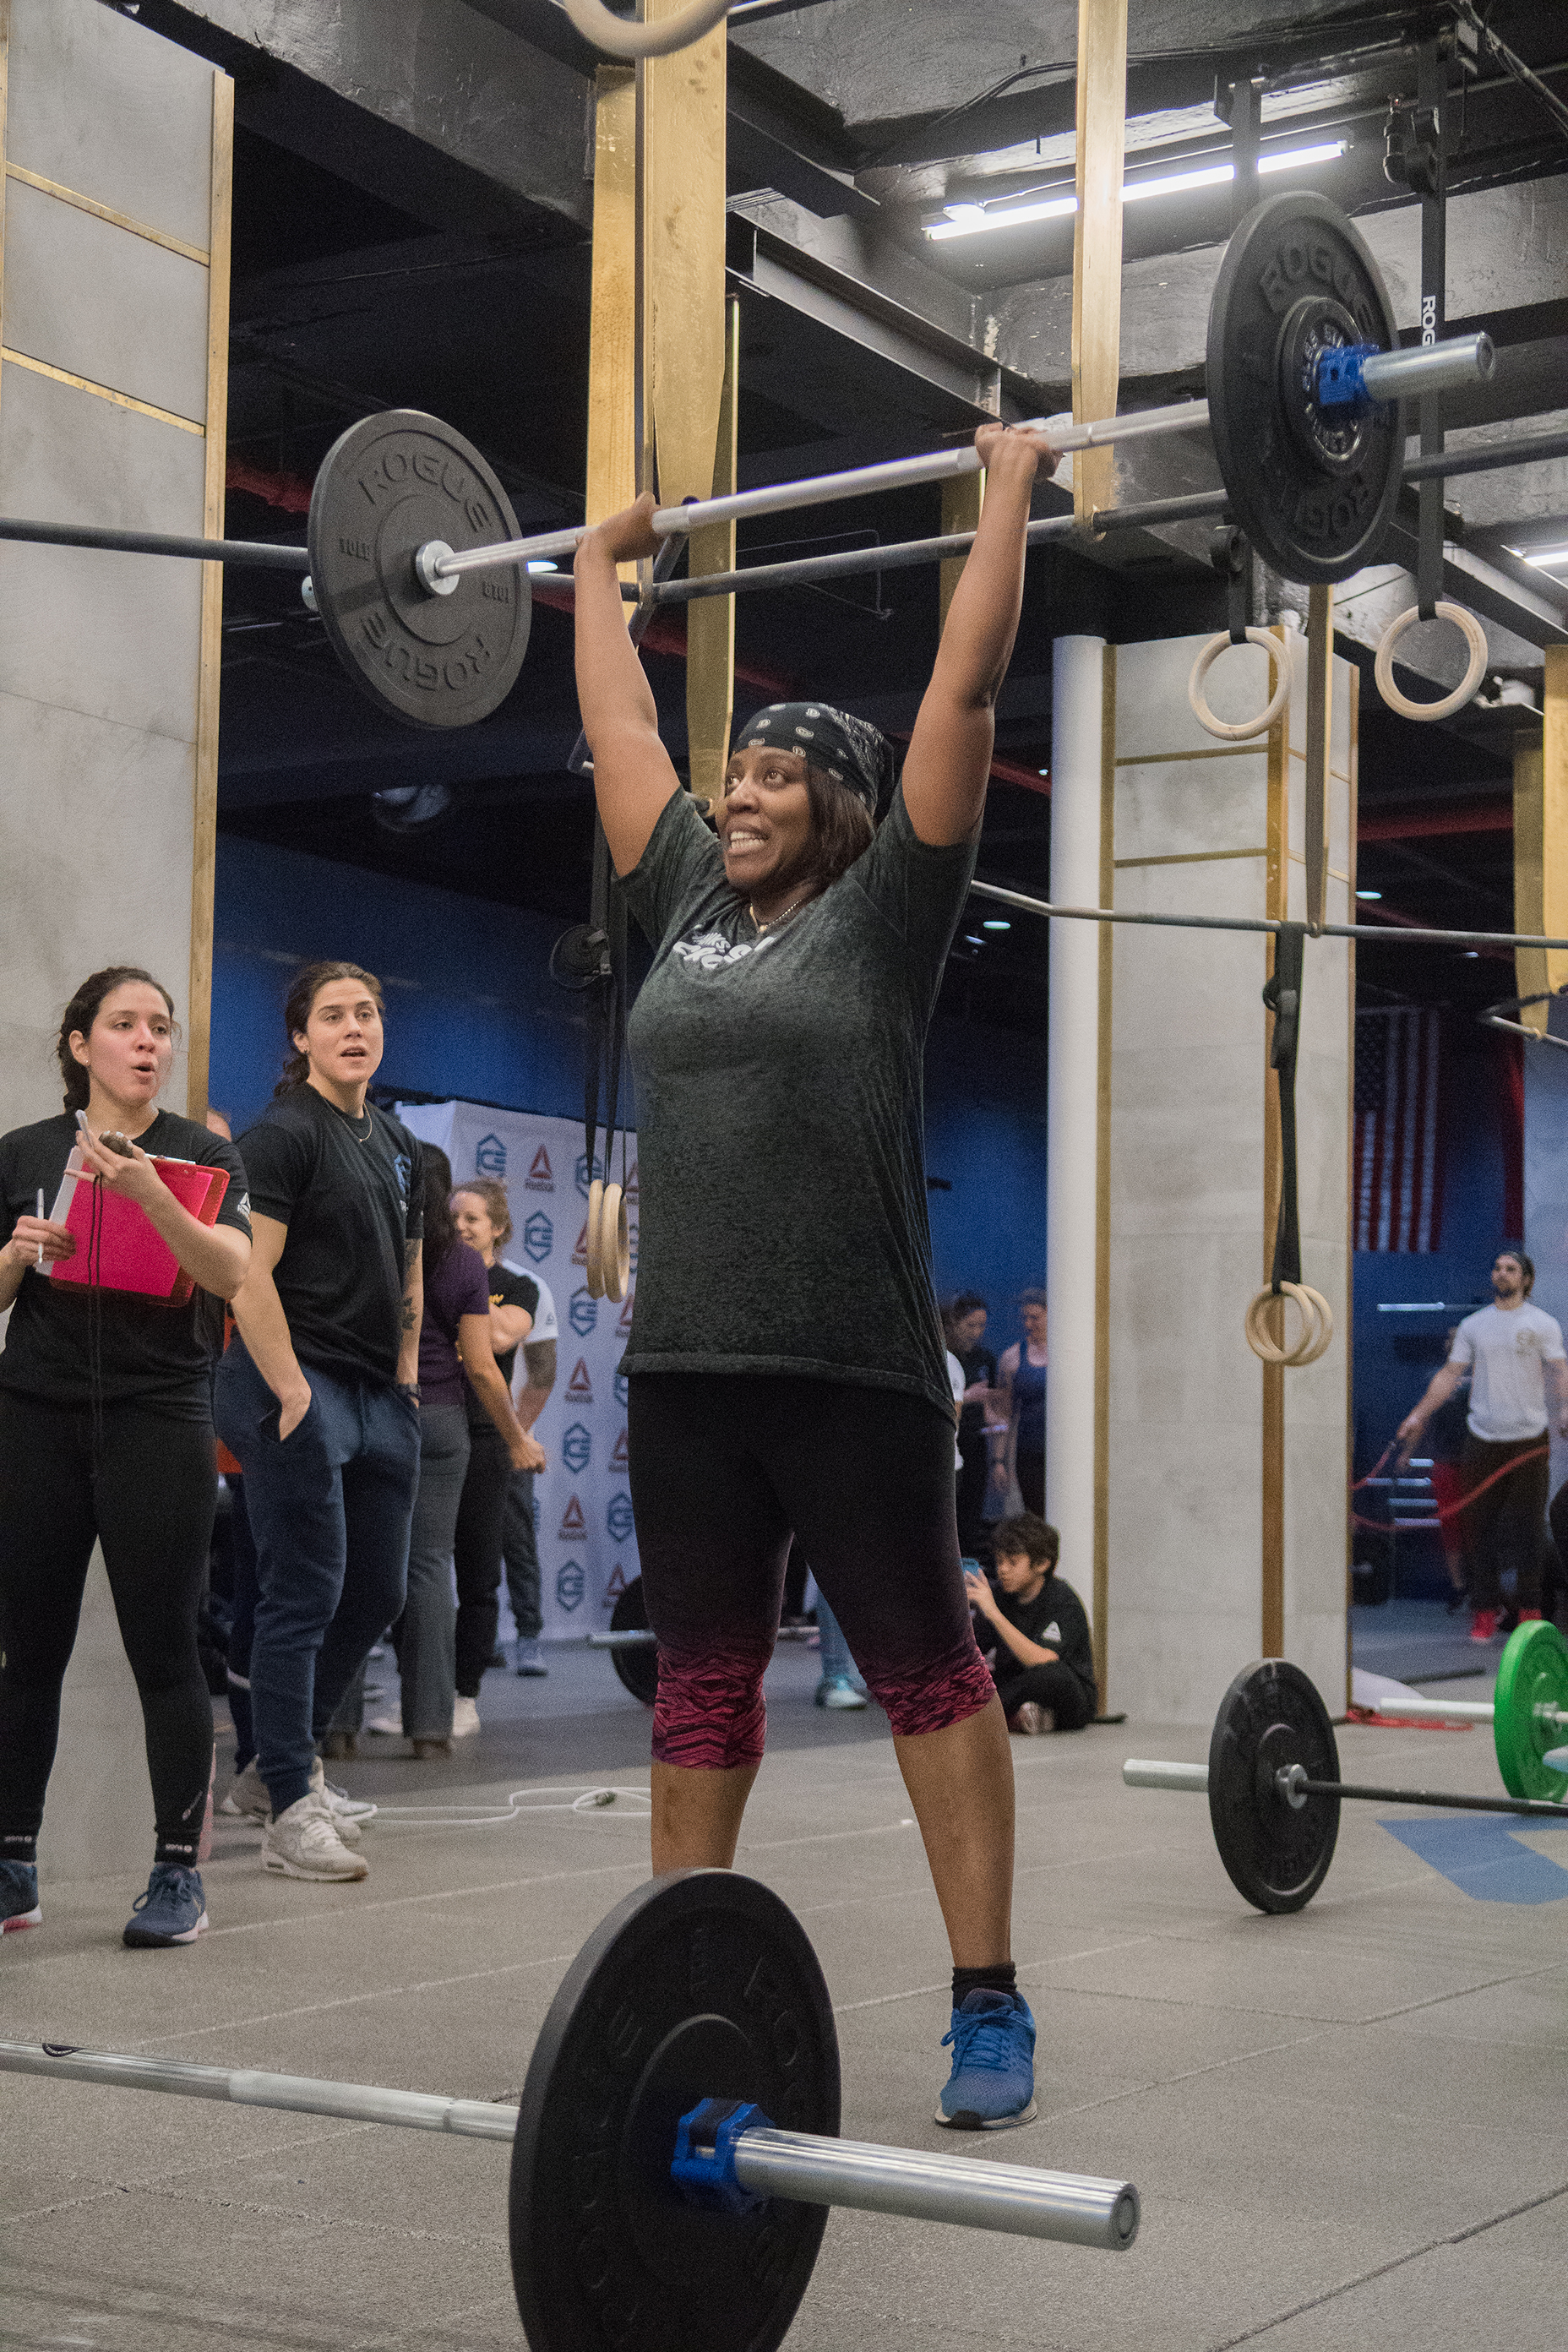 ICE NYC CrossFit Open 17.5 @martsromero - Quick Selects 012 20170324.jpg